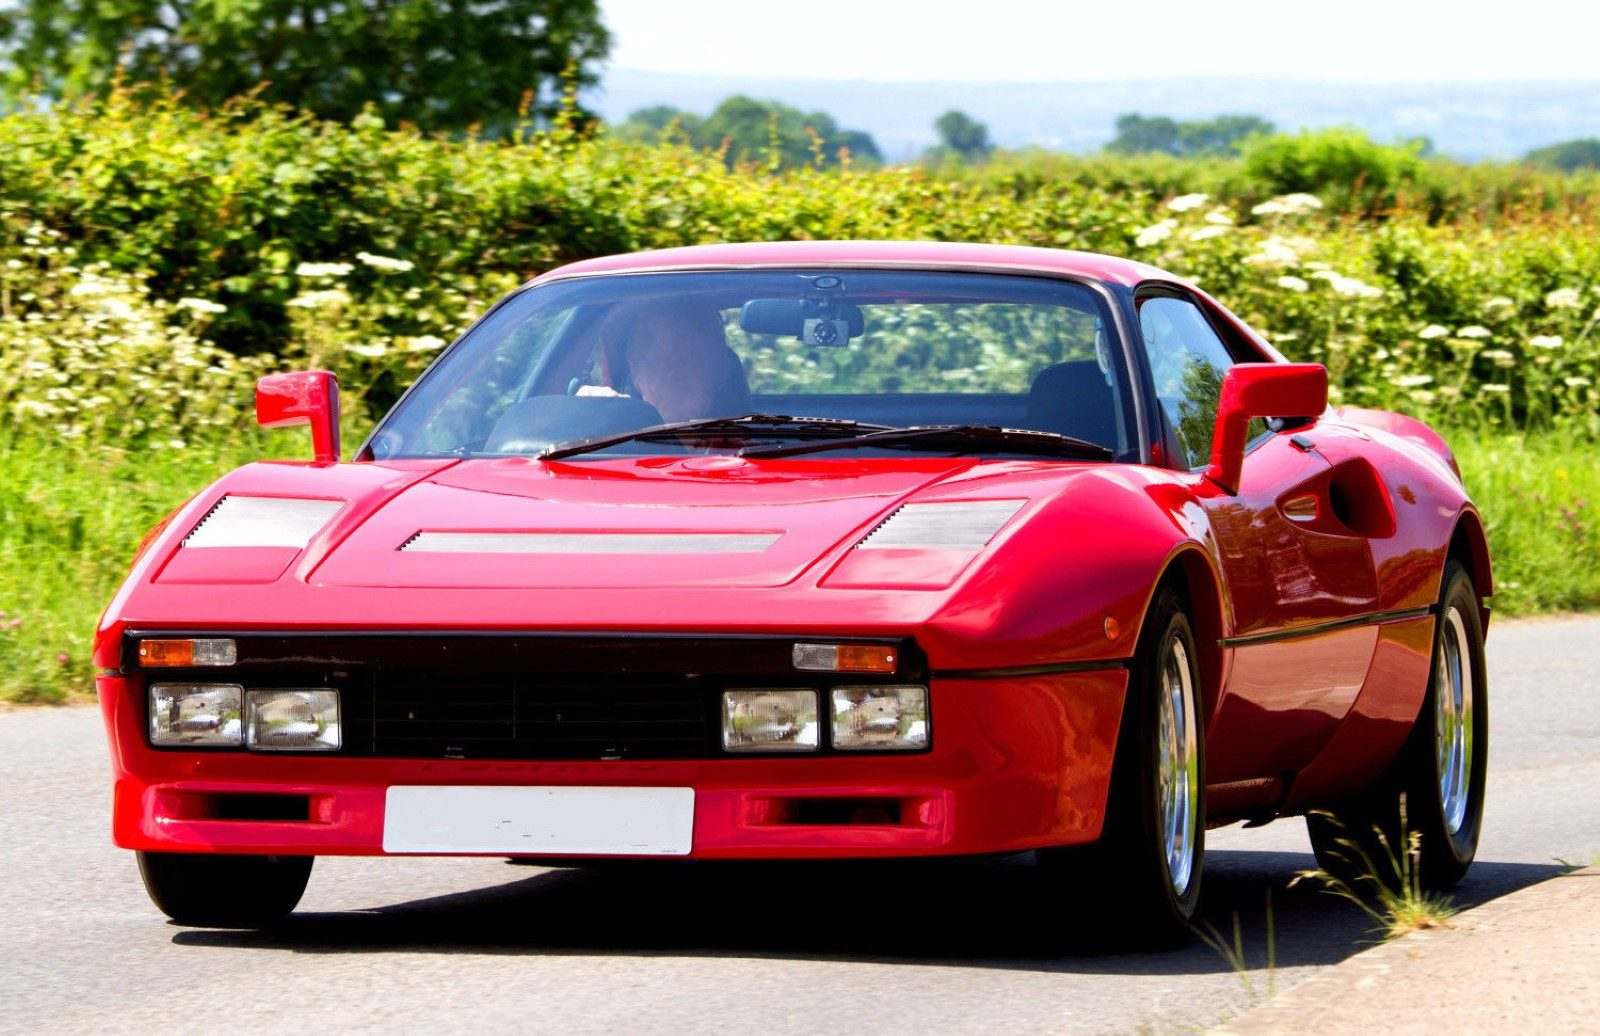 Toyota-MR2-Ferrari-288-GTO-kitcar-001.jpg